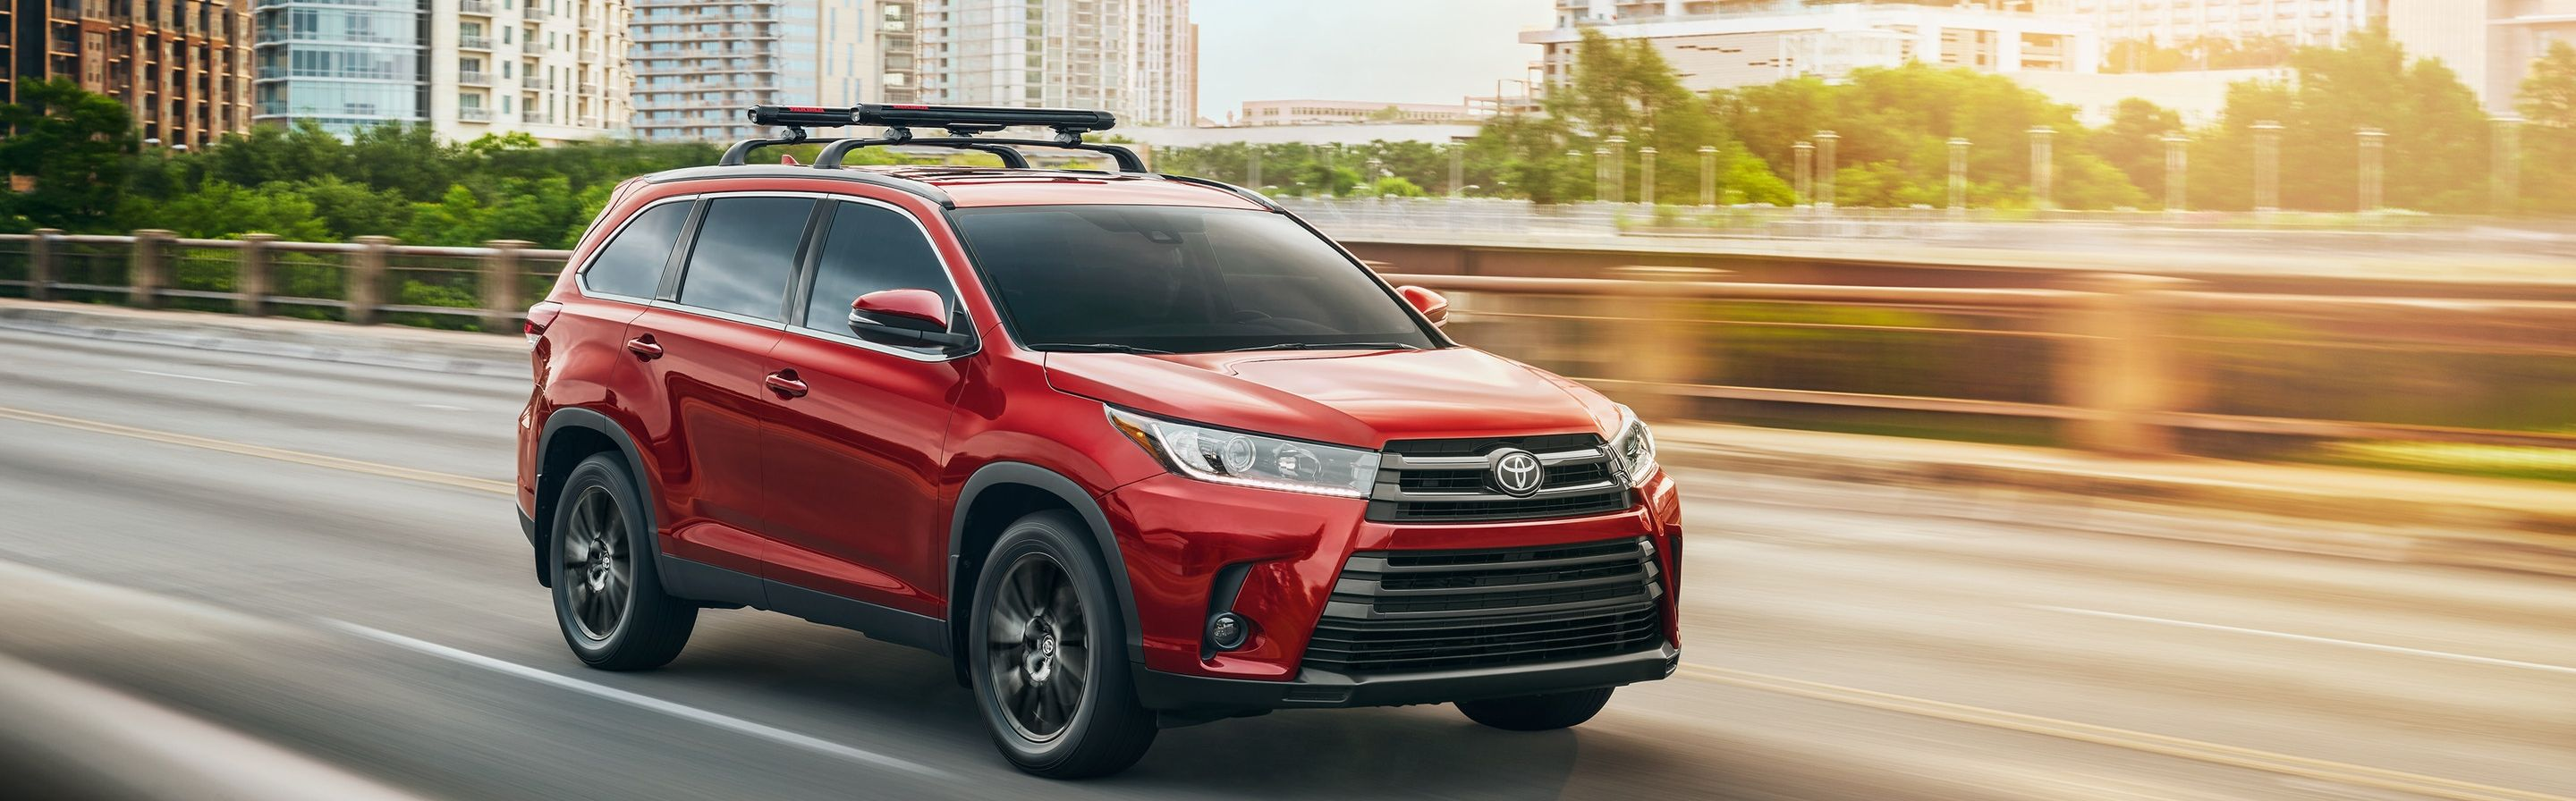 2019 Toyota Highlander Hybrid for Sale near Olathe, KS, 66061